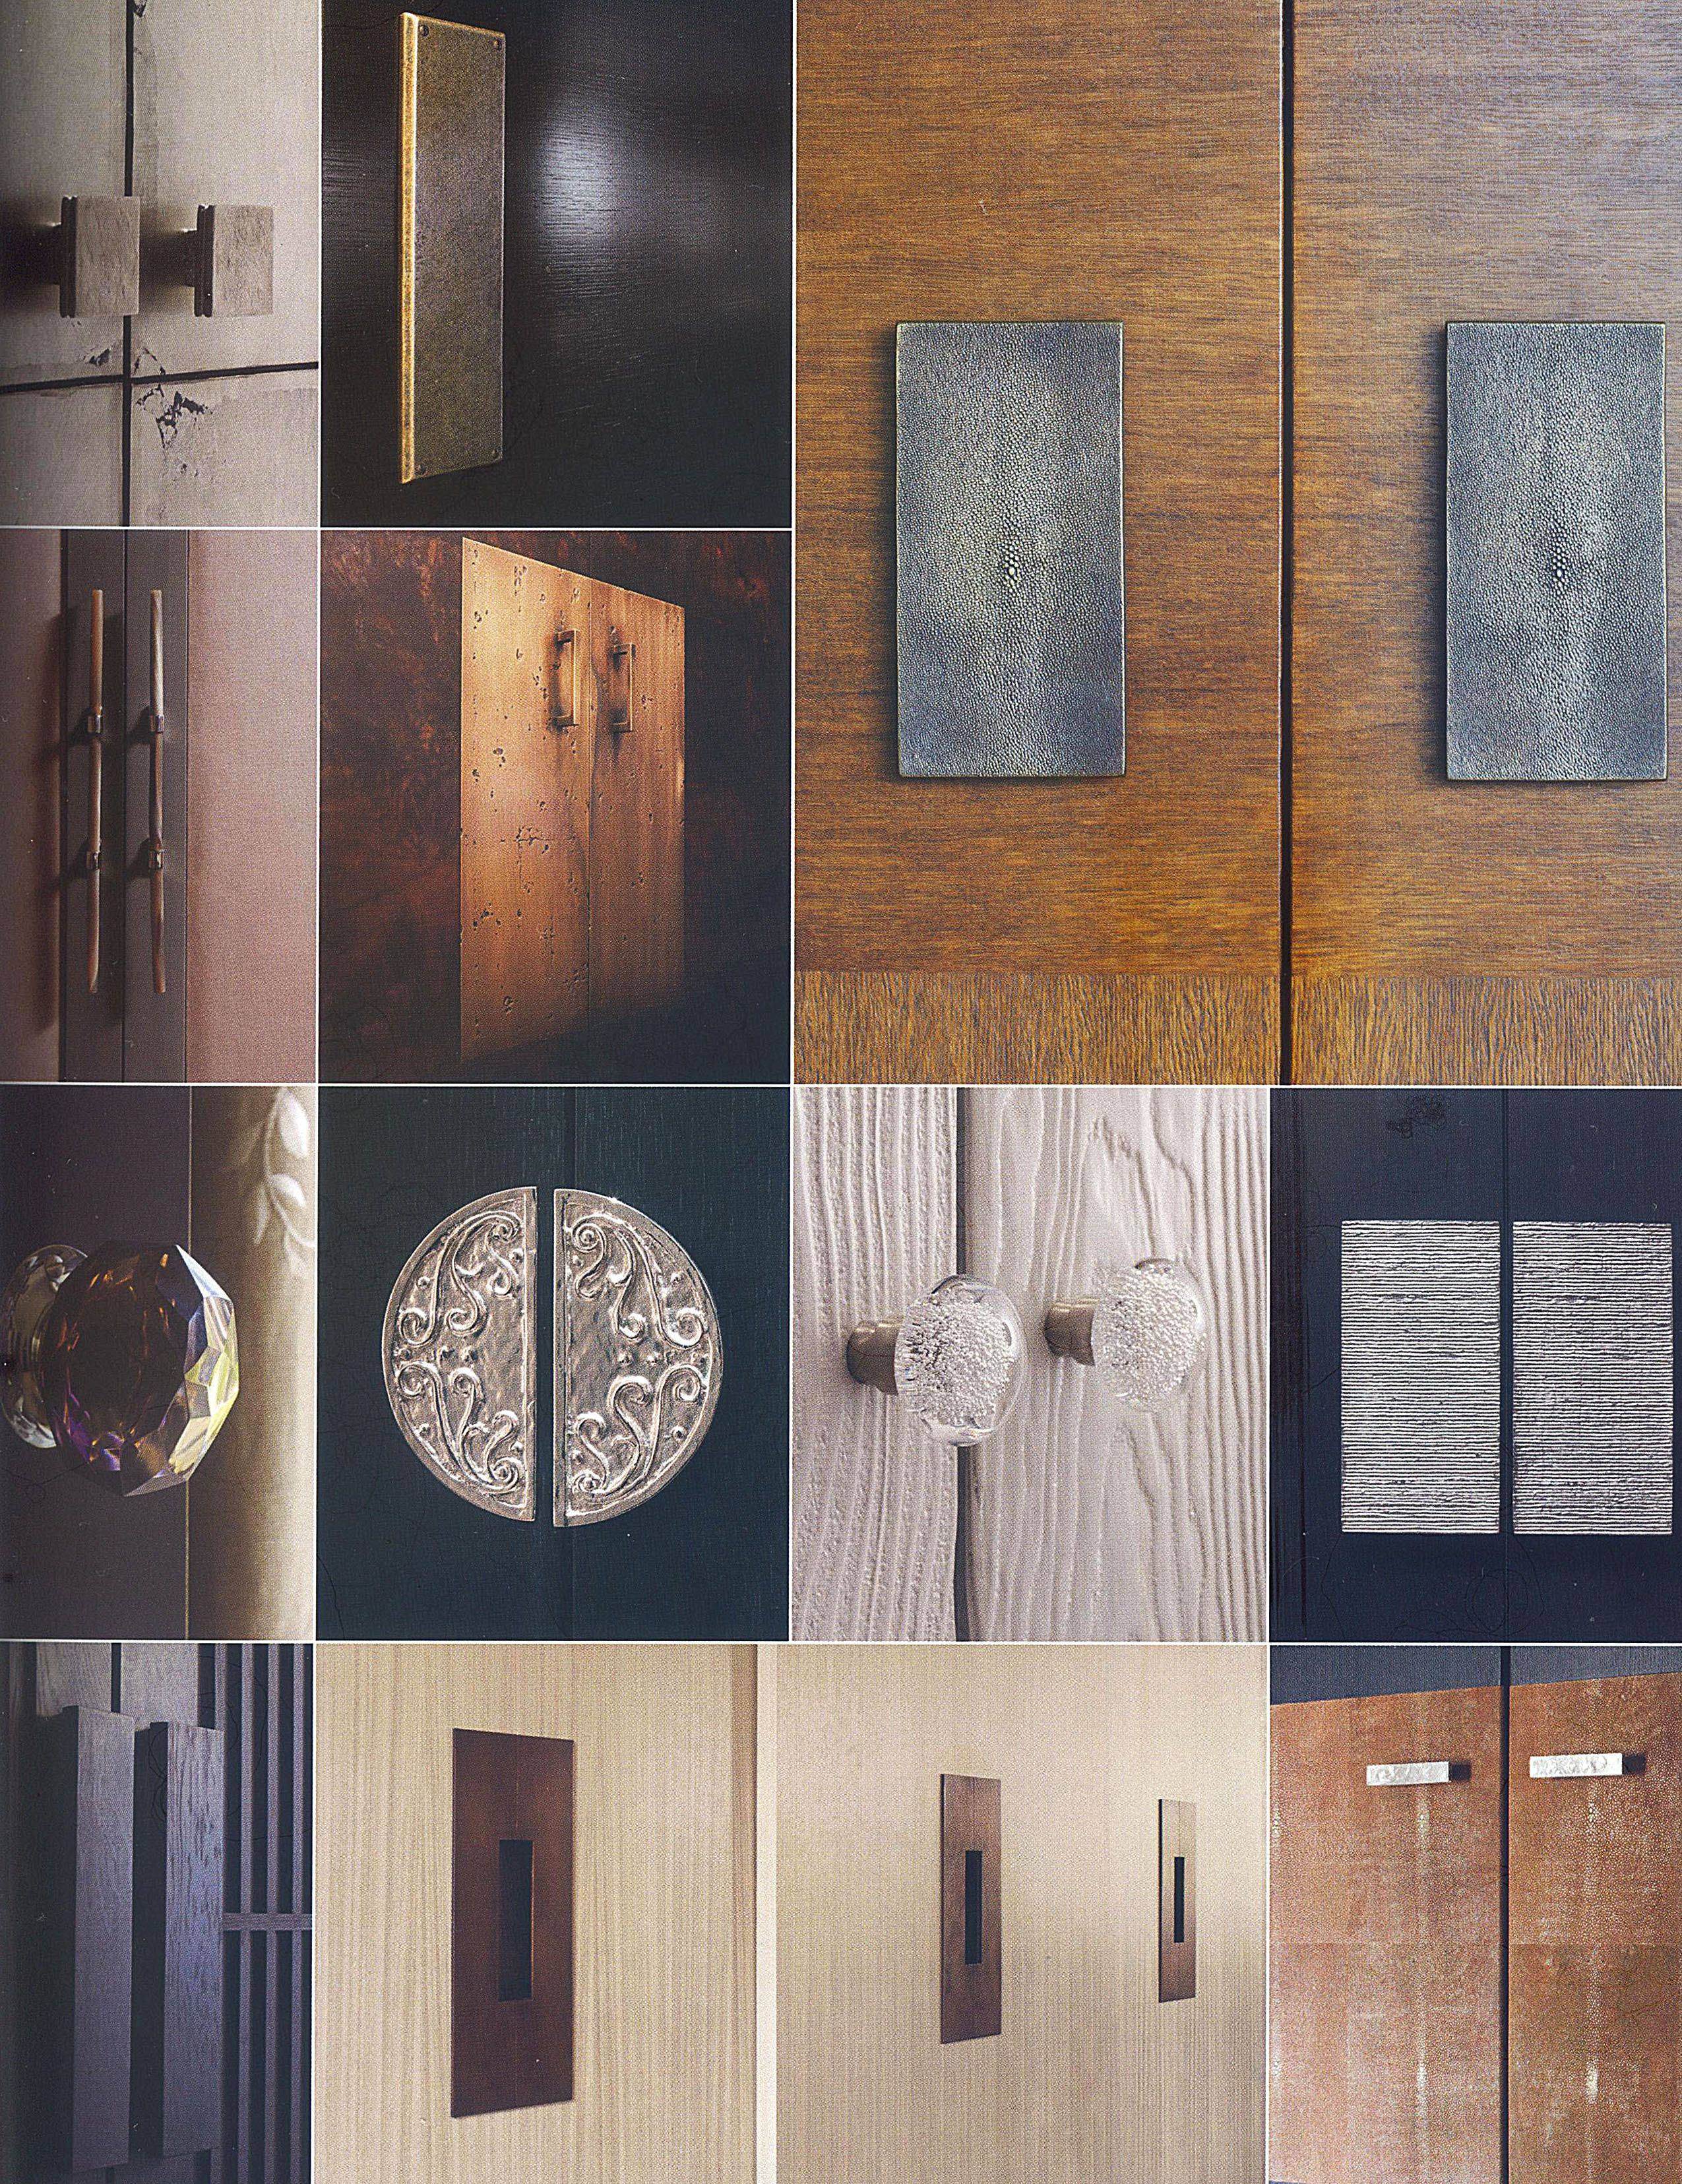 Kelly Hoppen door handles | Doors | Pinterest